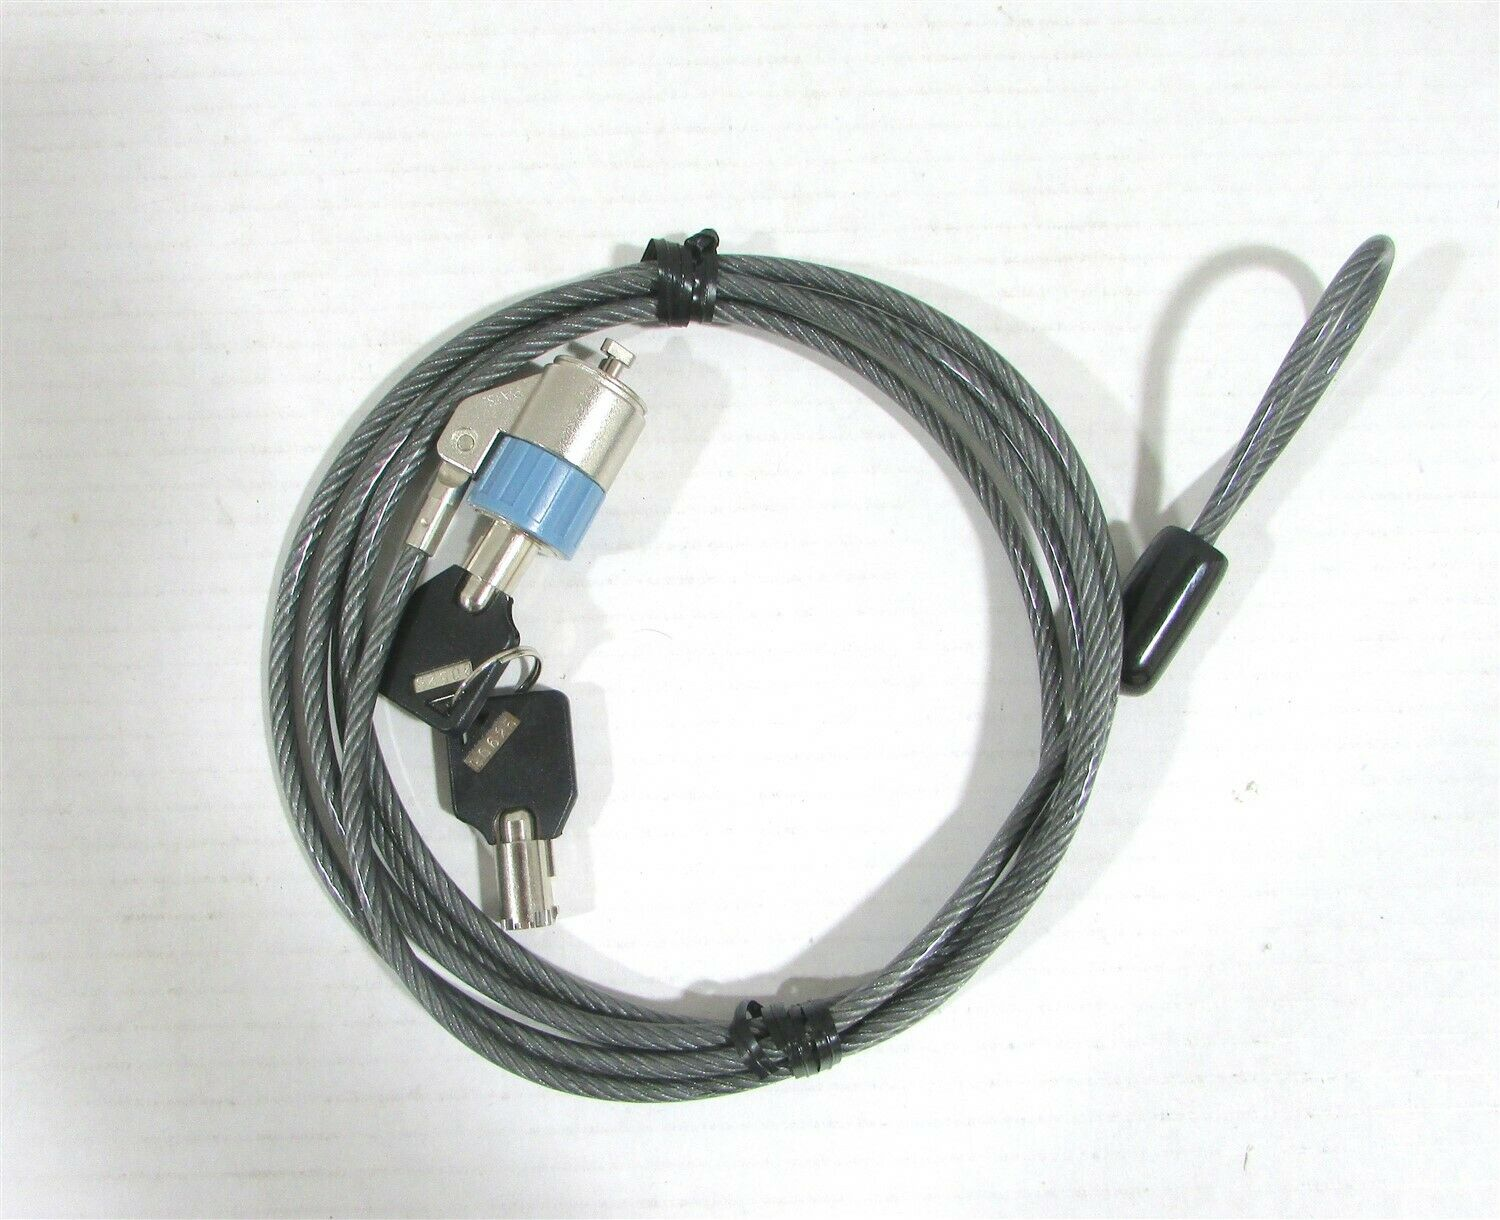 New Brenthaven Zero Impact Laptop Cable Lock #4100 Computer Notebook with 2 Keys